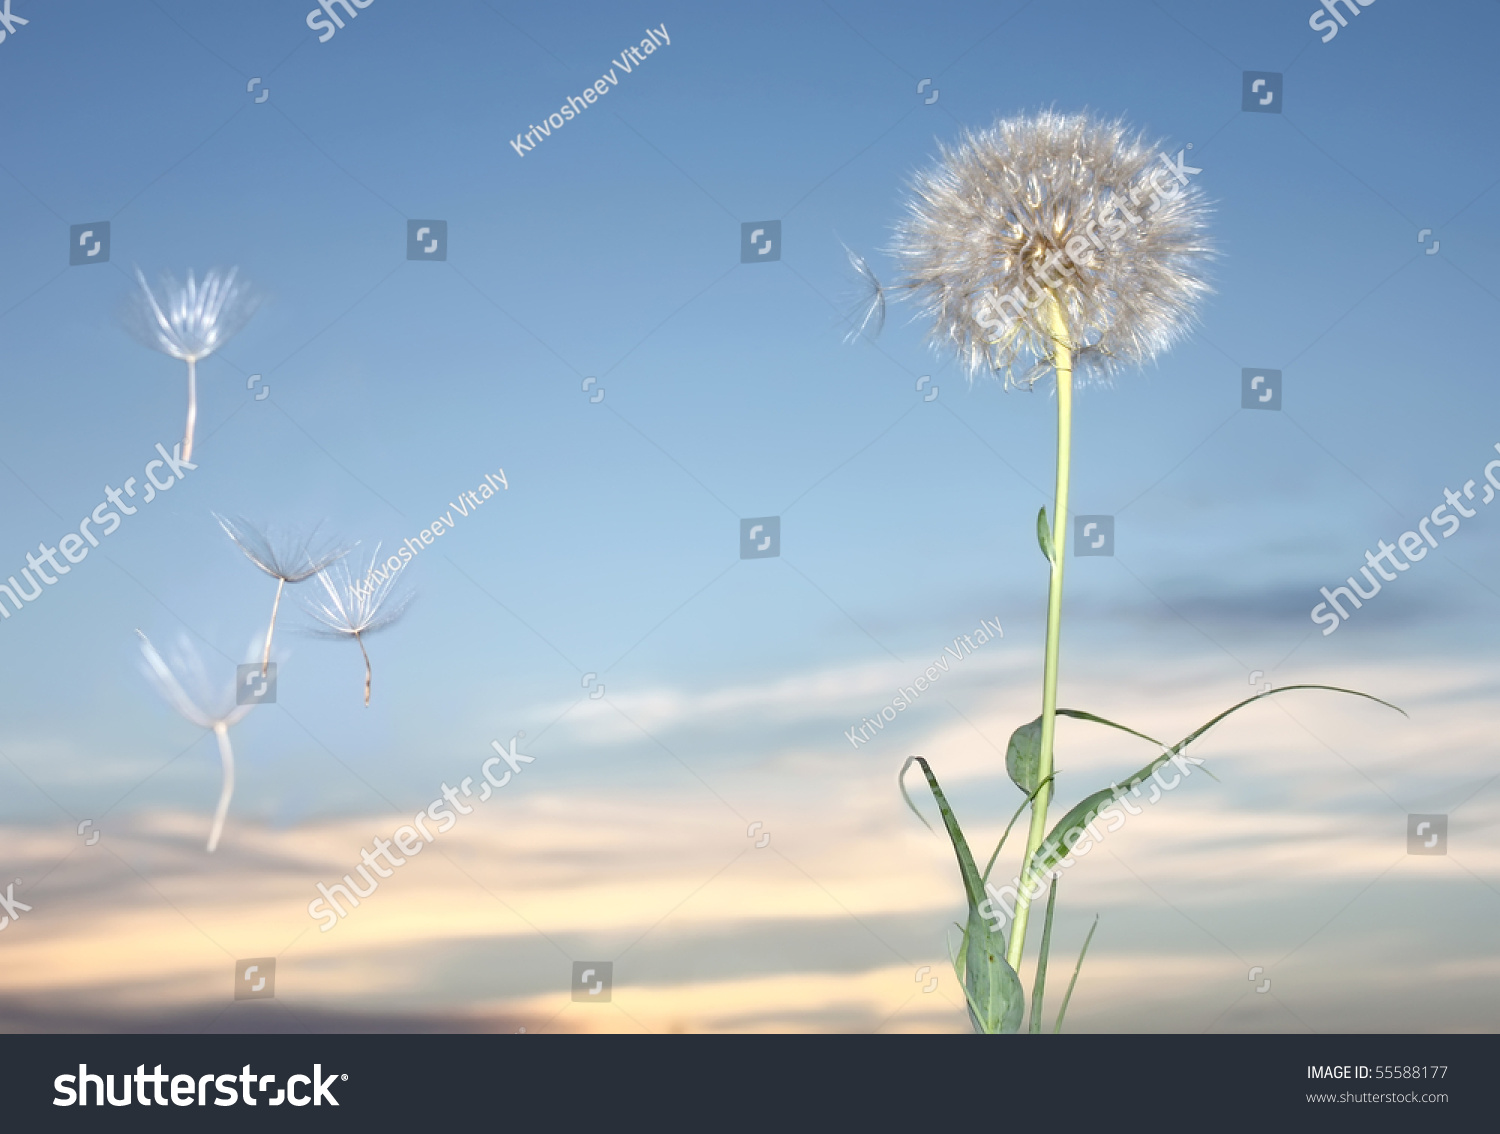 how to draw a dandelion blowing in the wind